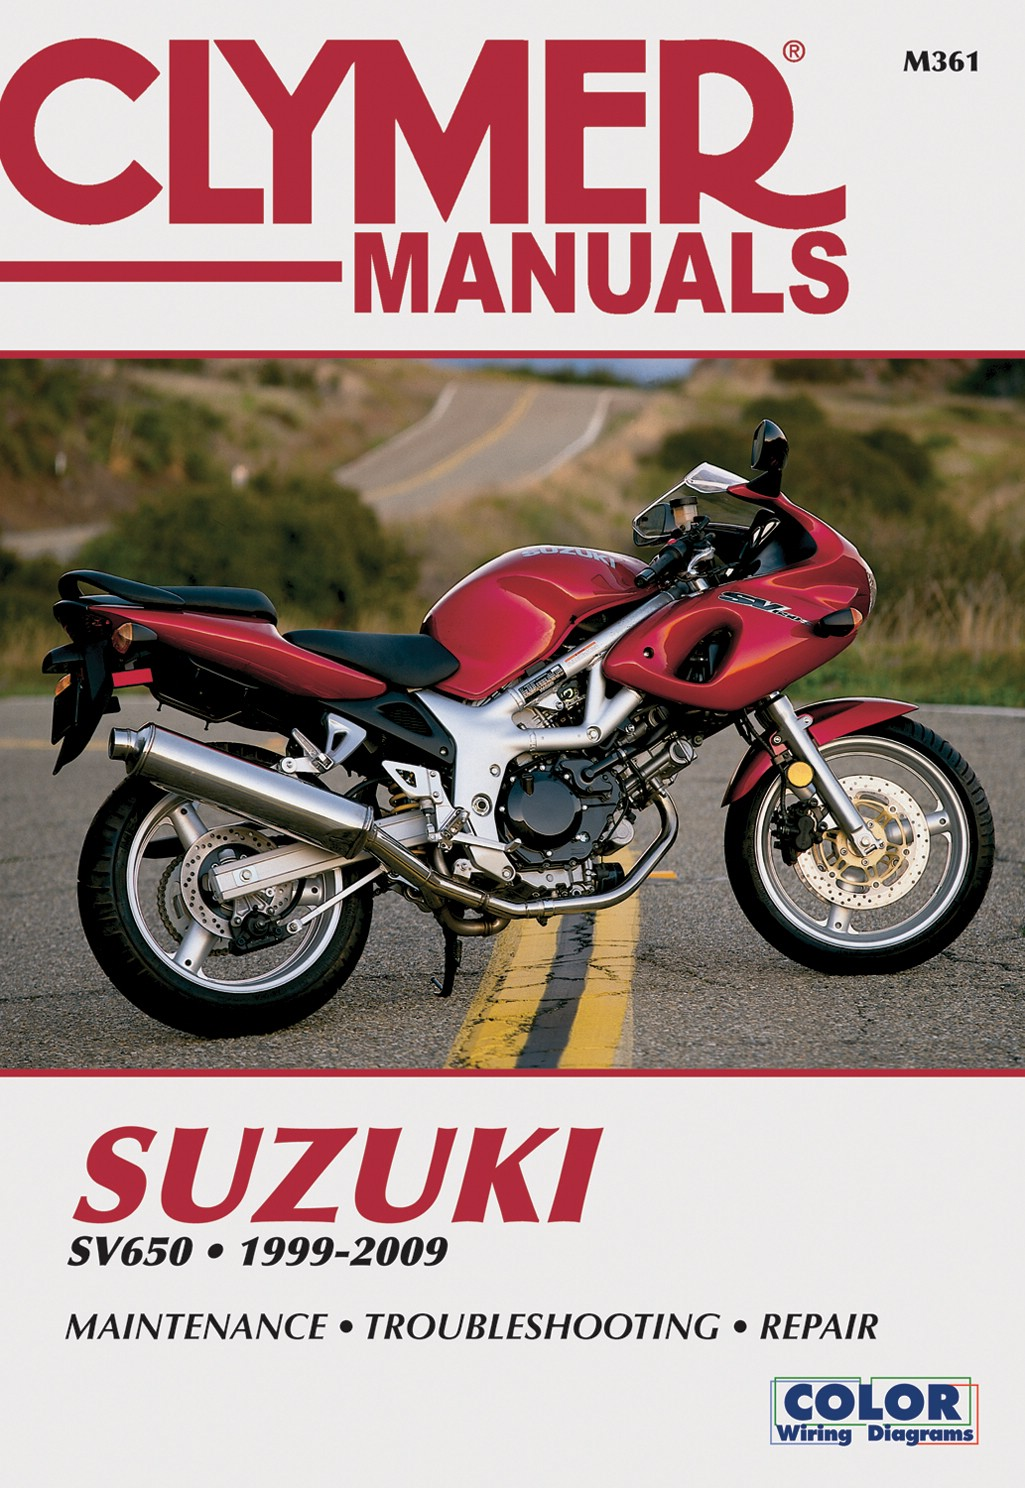 Clymer Manual Suzuki Sv650 99 08 Each Ebay 2006 Wiring Diagram Image Is Loading